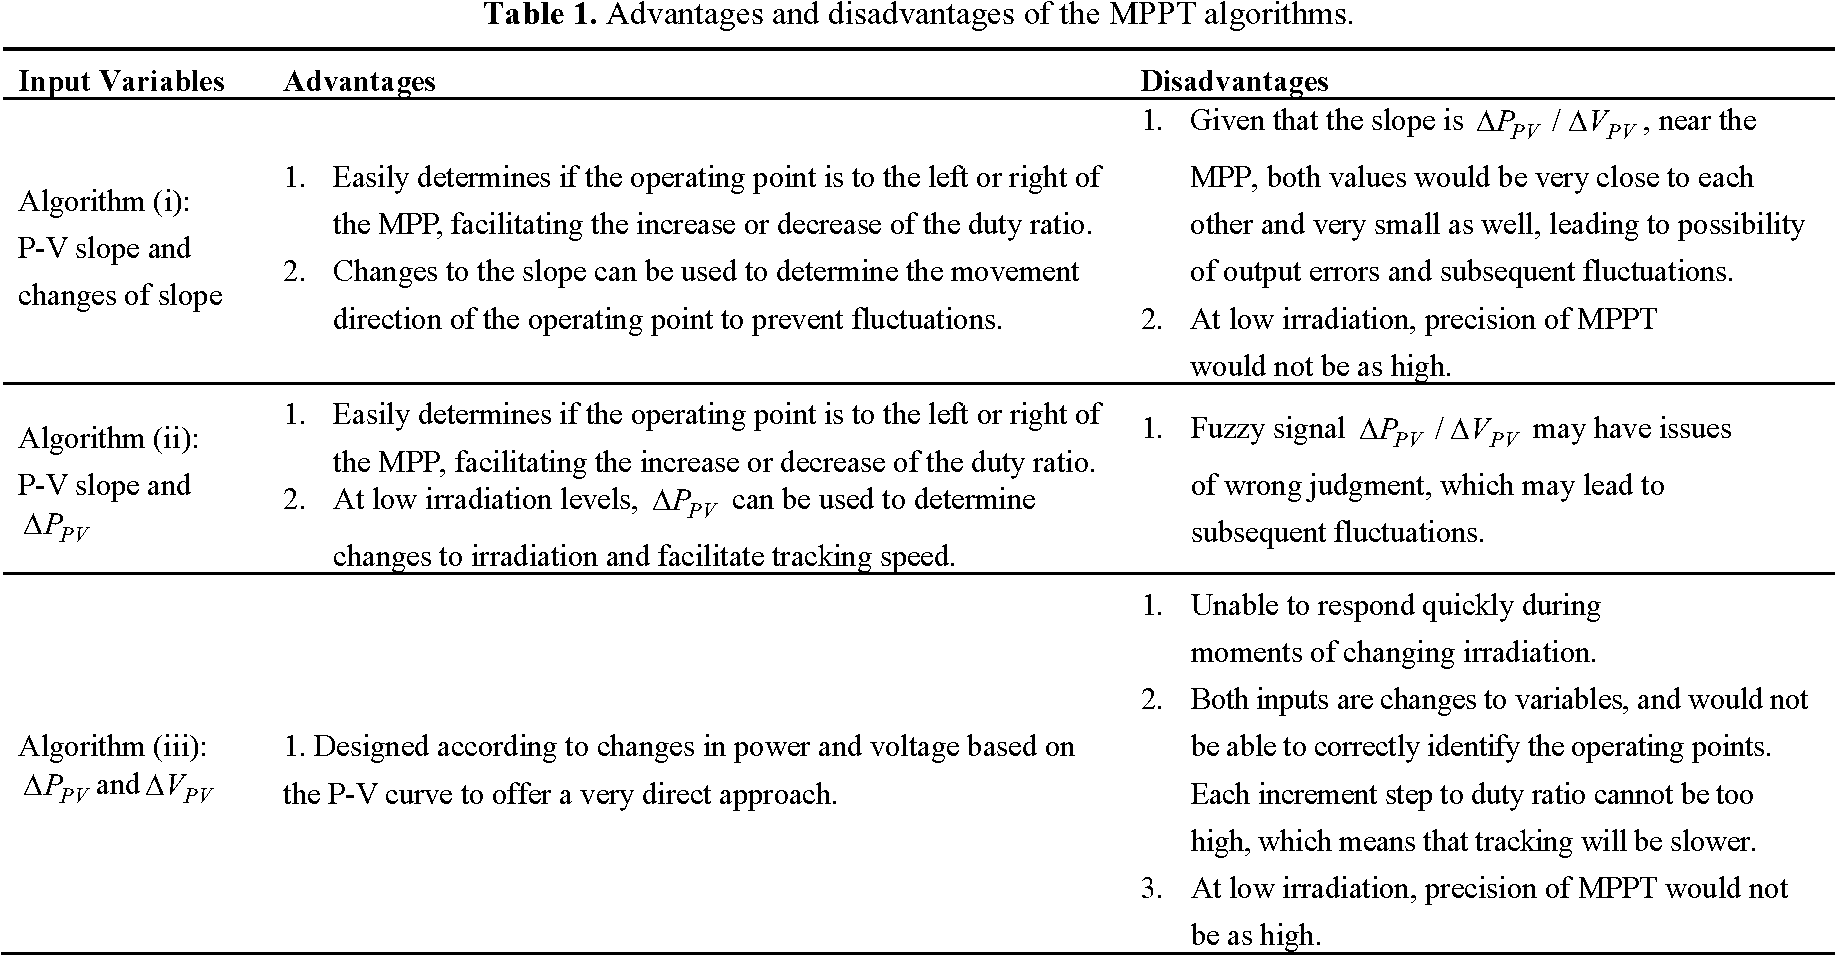 Table 1 from A Study on the Fuzzy-Logic-Based Solar Power MPPT